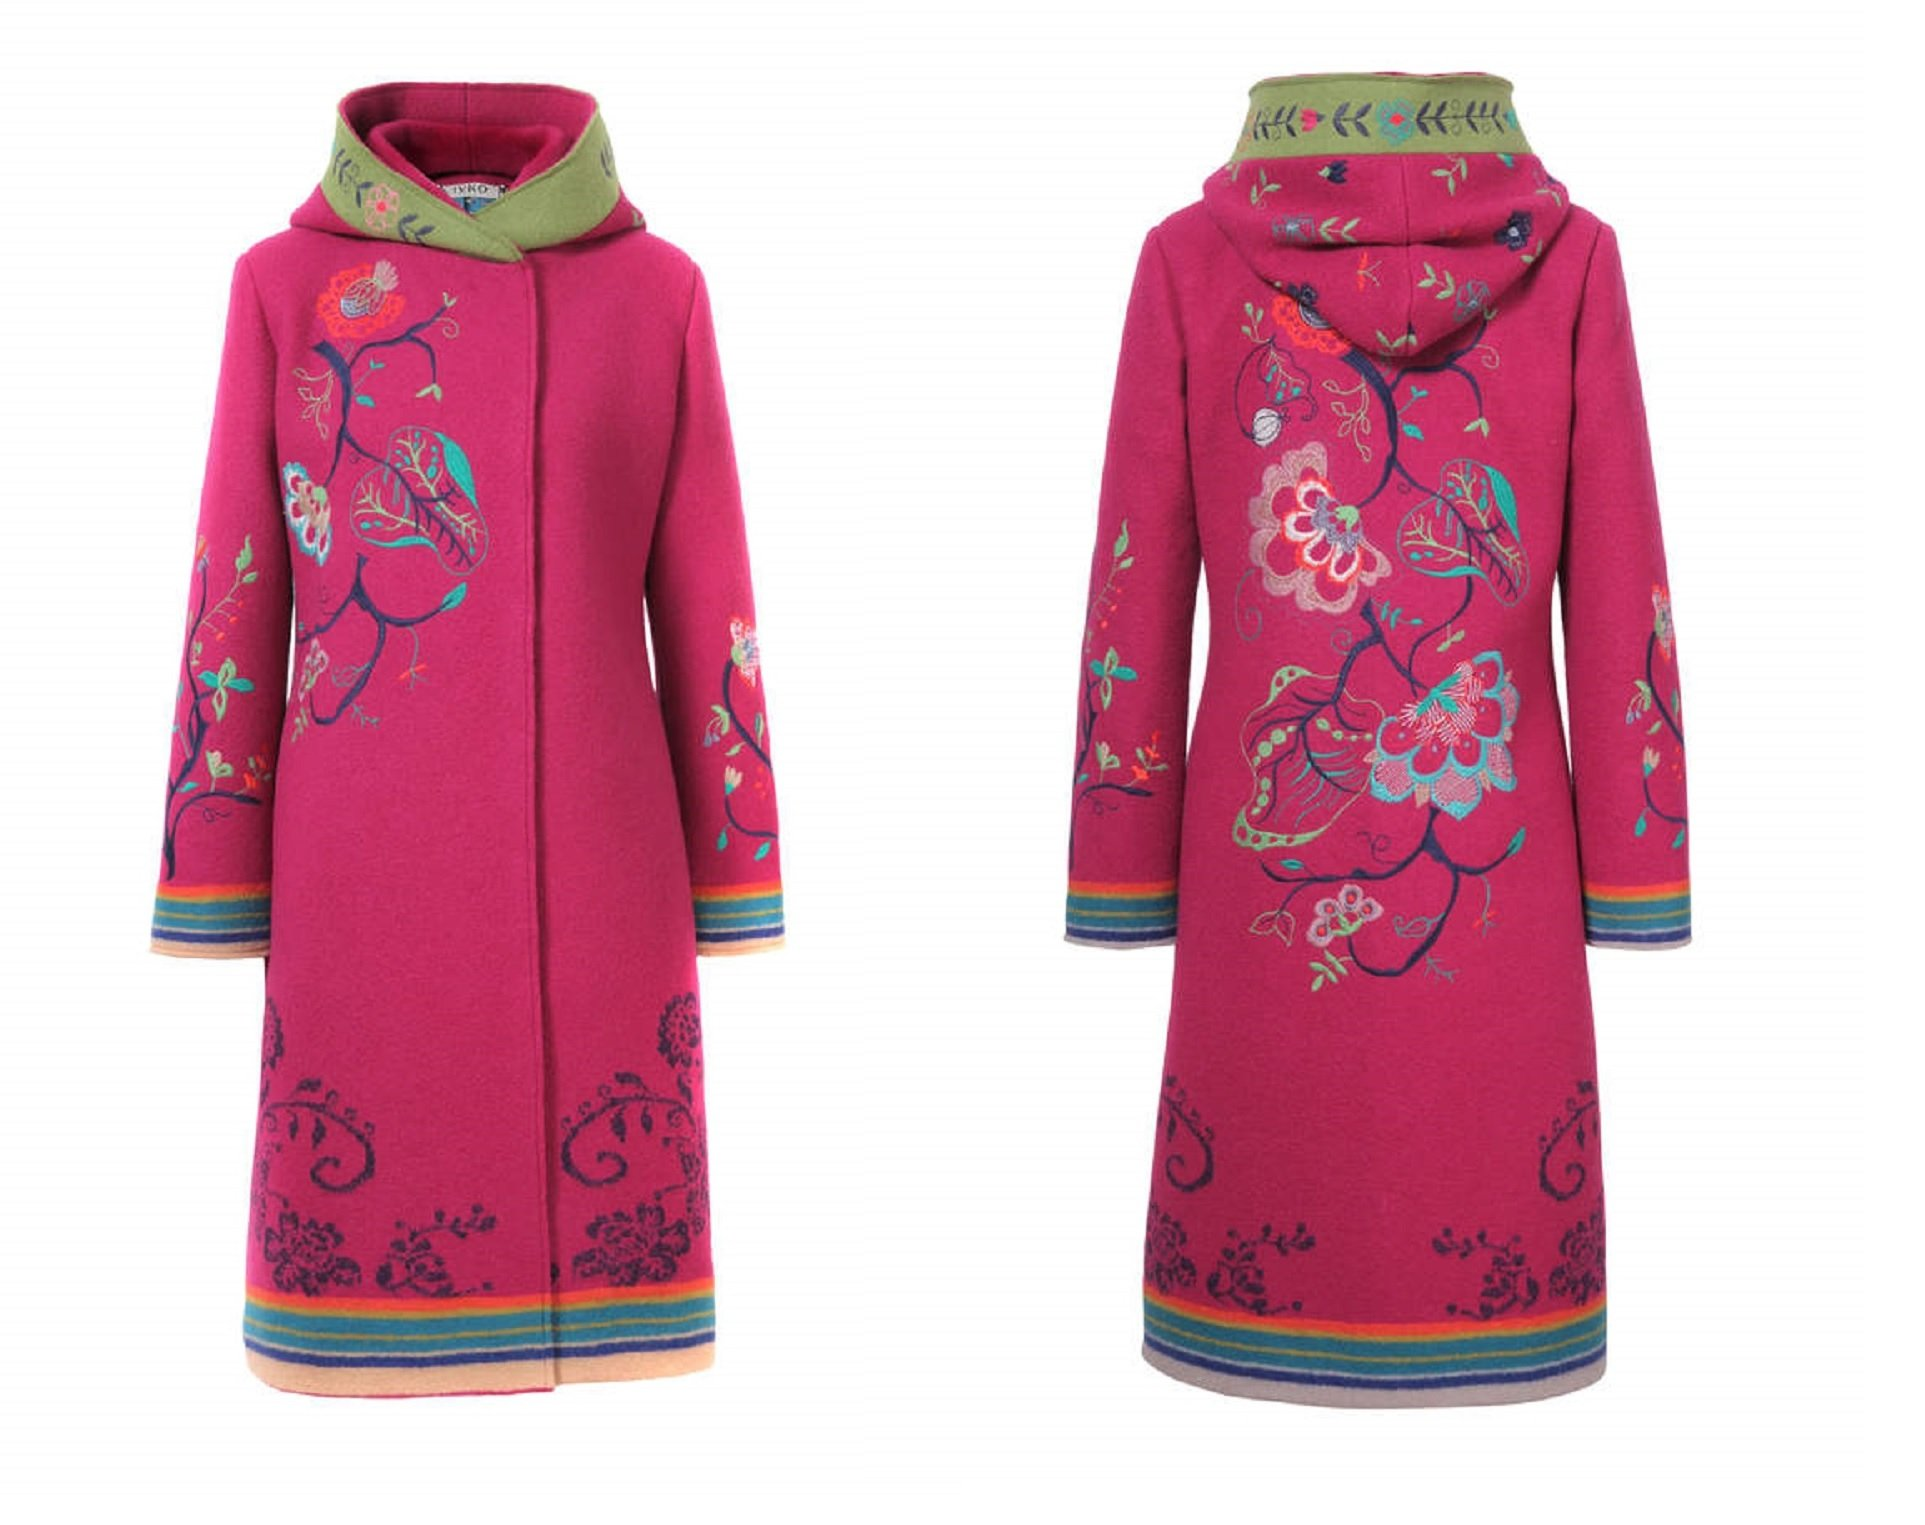 IVKO Boiled Wool Coat With Embroidery, Pink